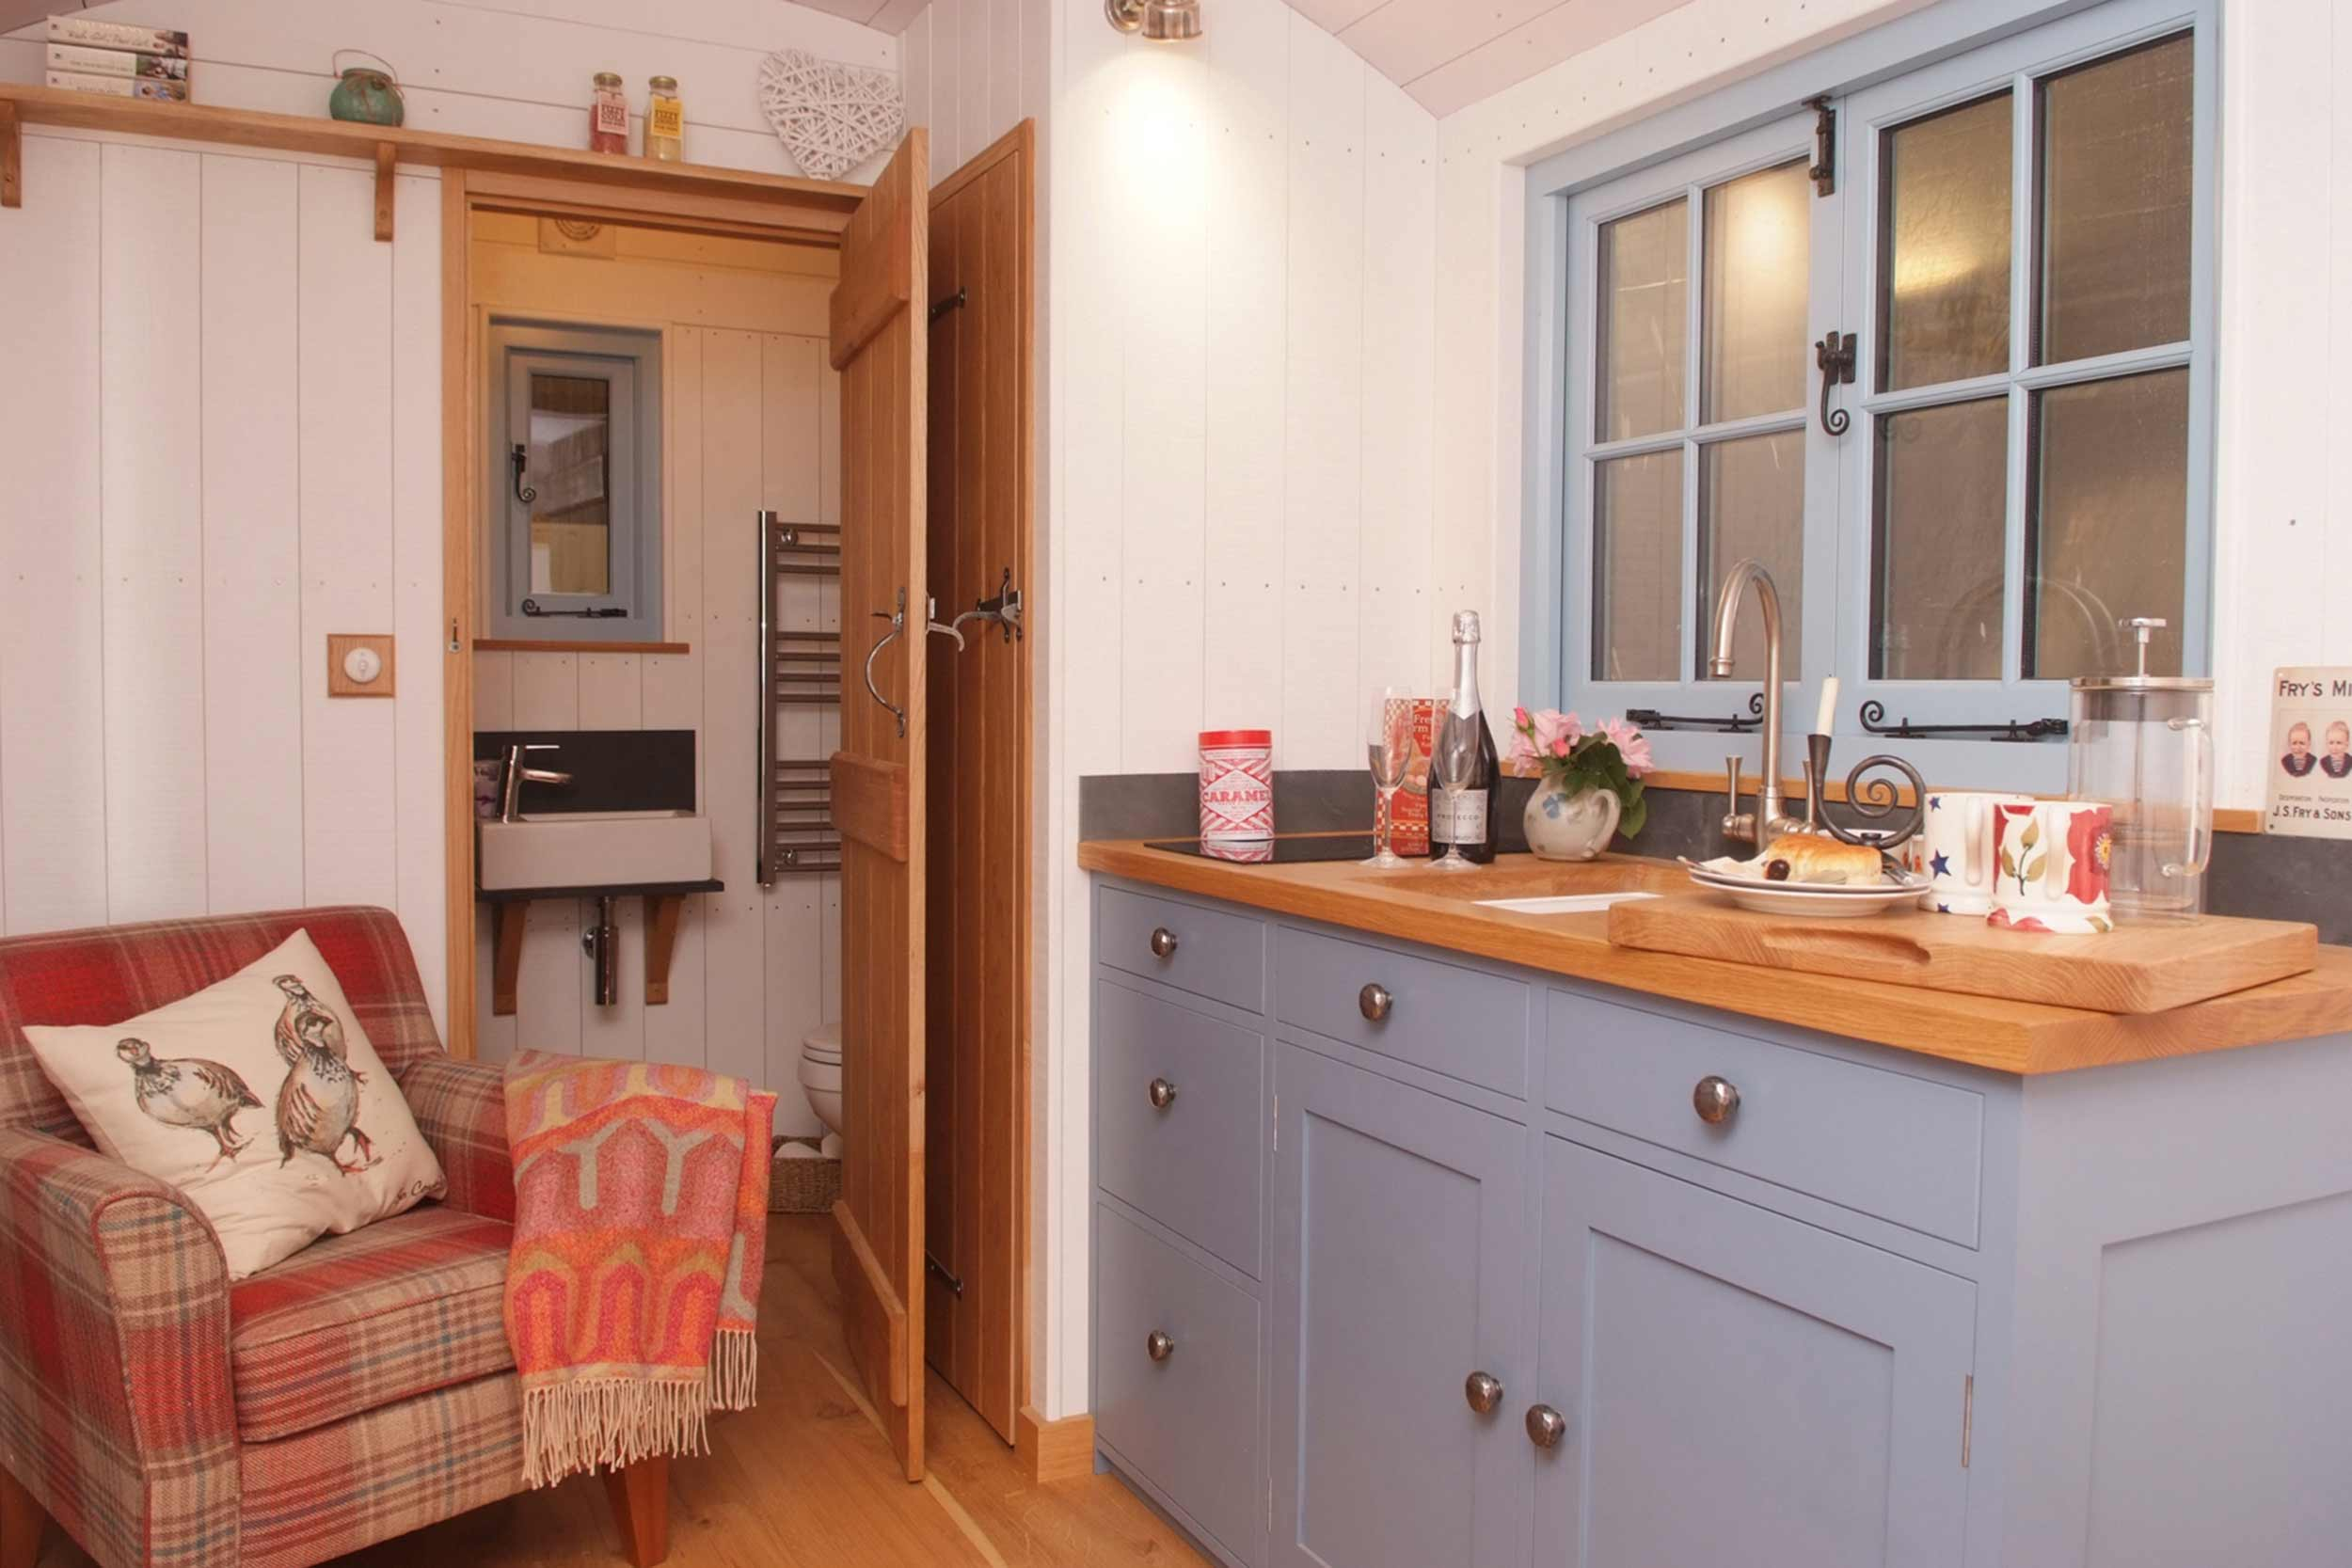 Shepherds Hut Cosy Kitchen with through to Fitted Bathroom